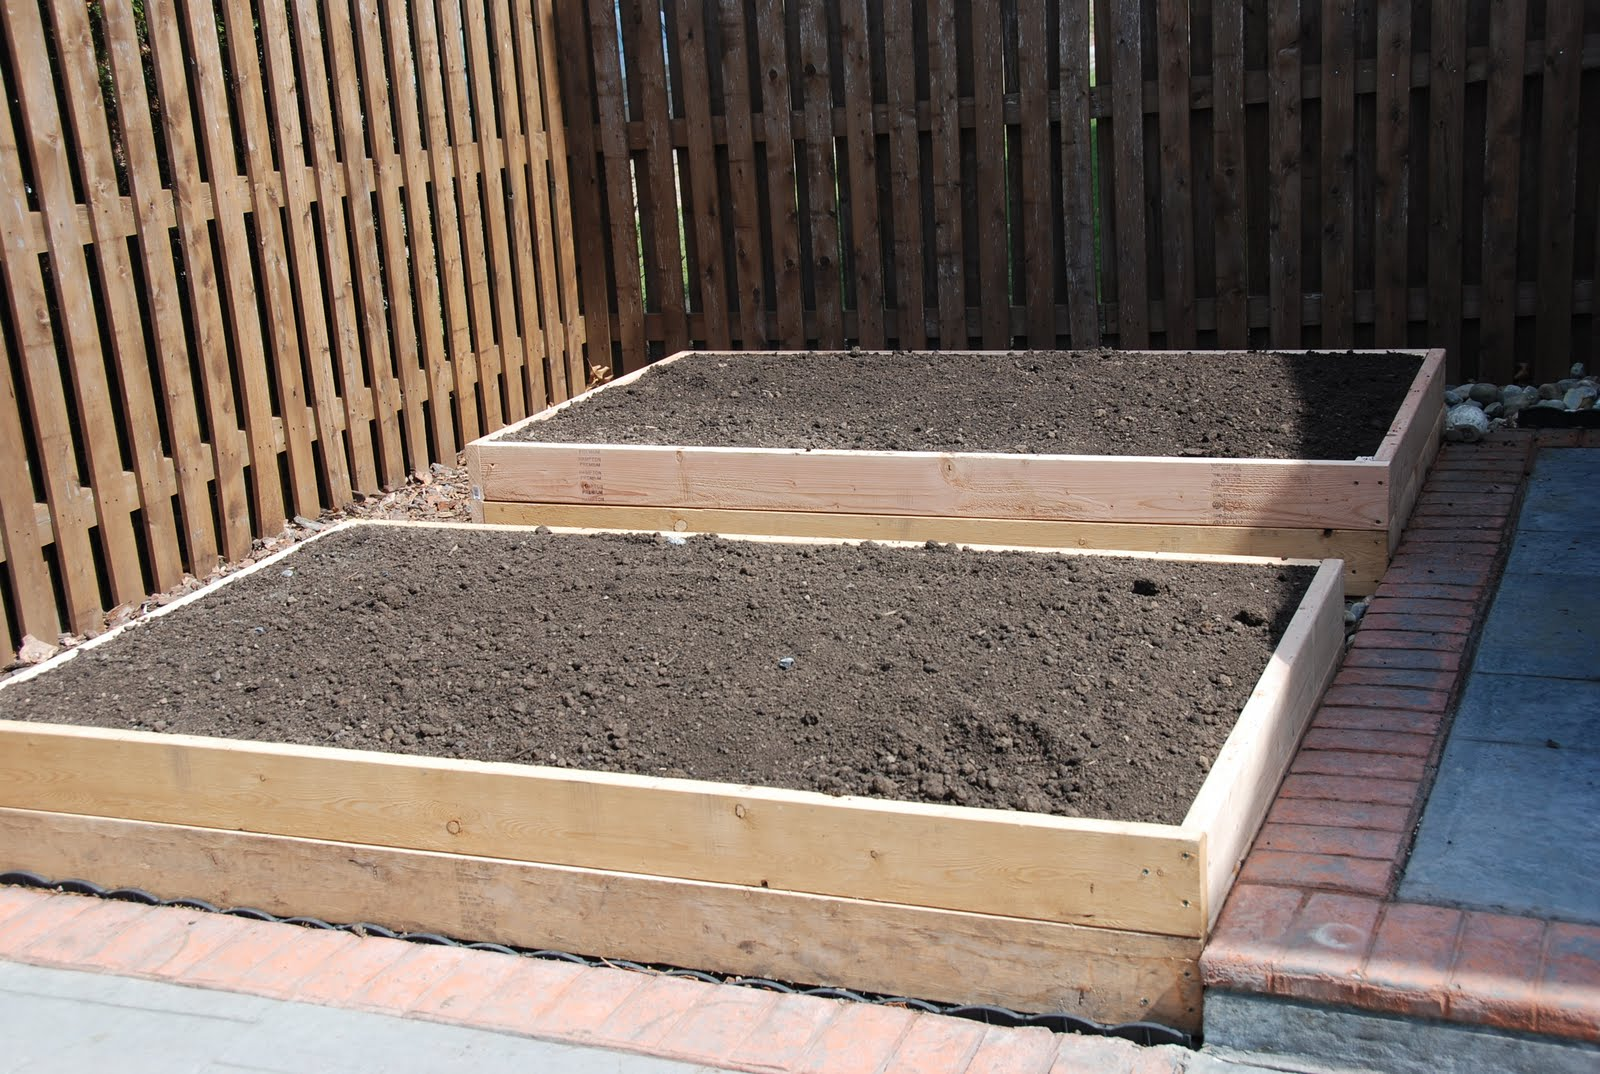 diy raised vegetable garden step by step instructions on